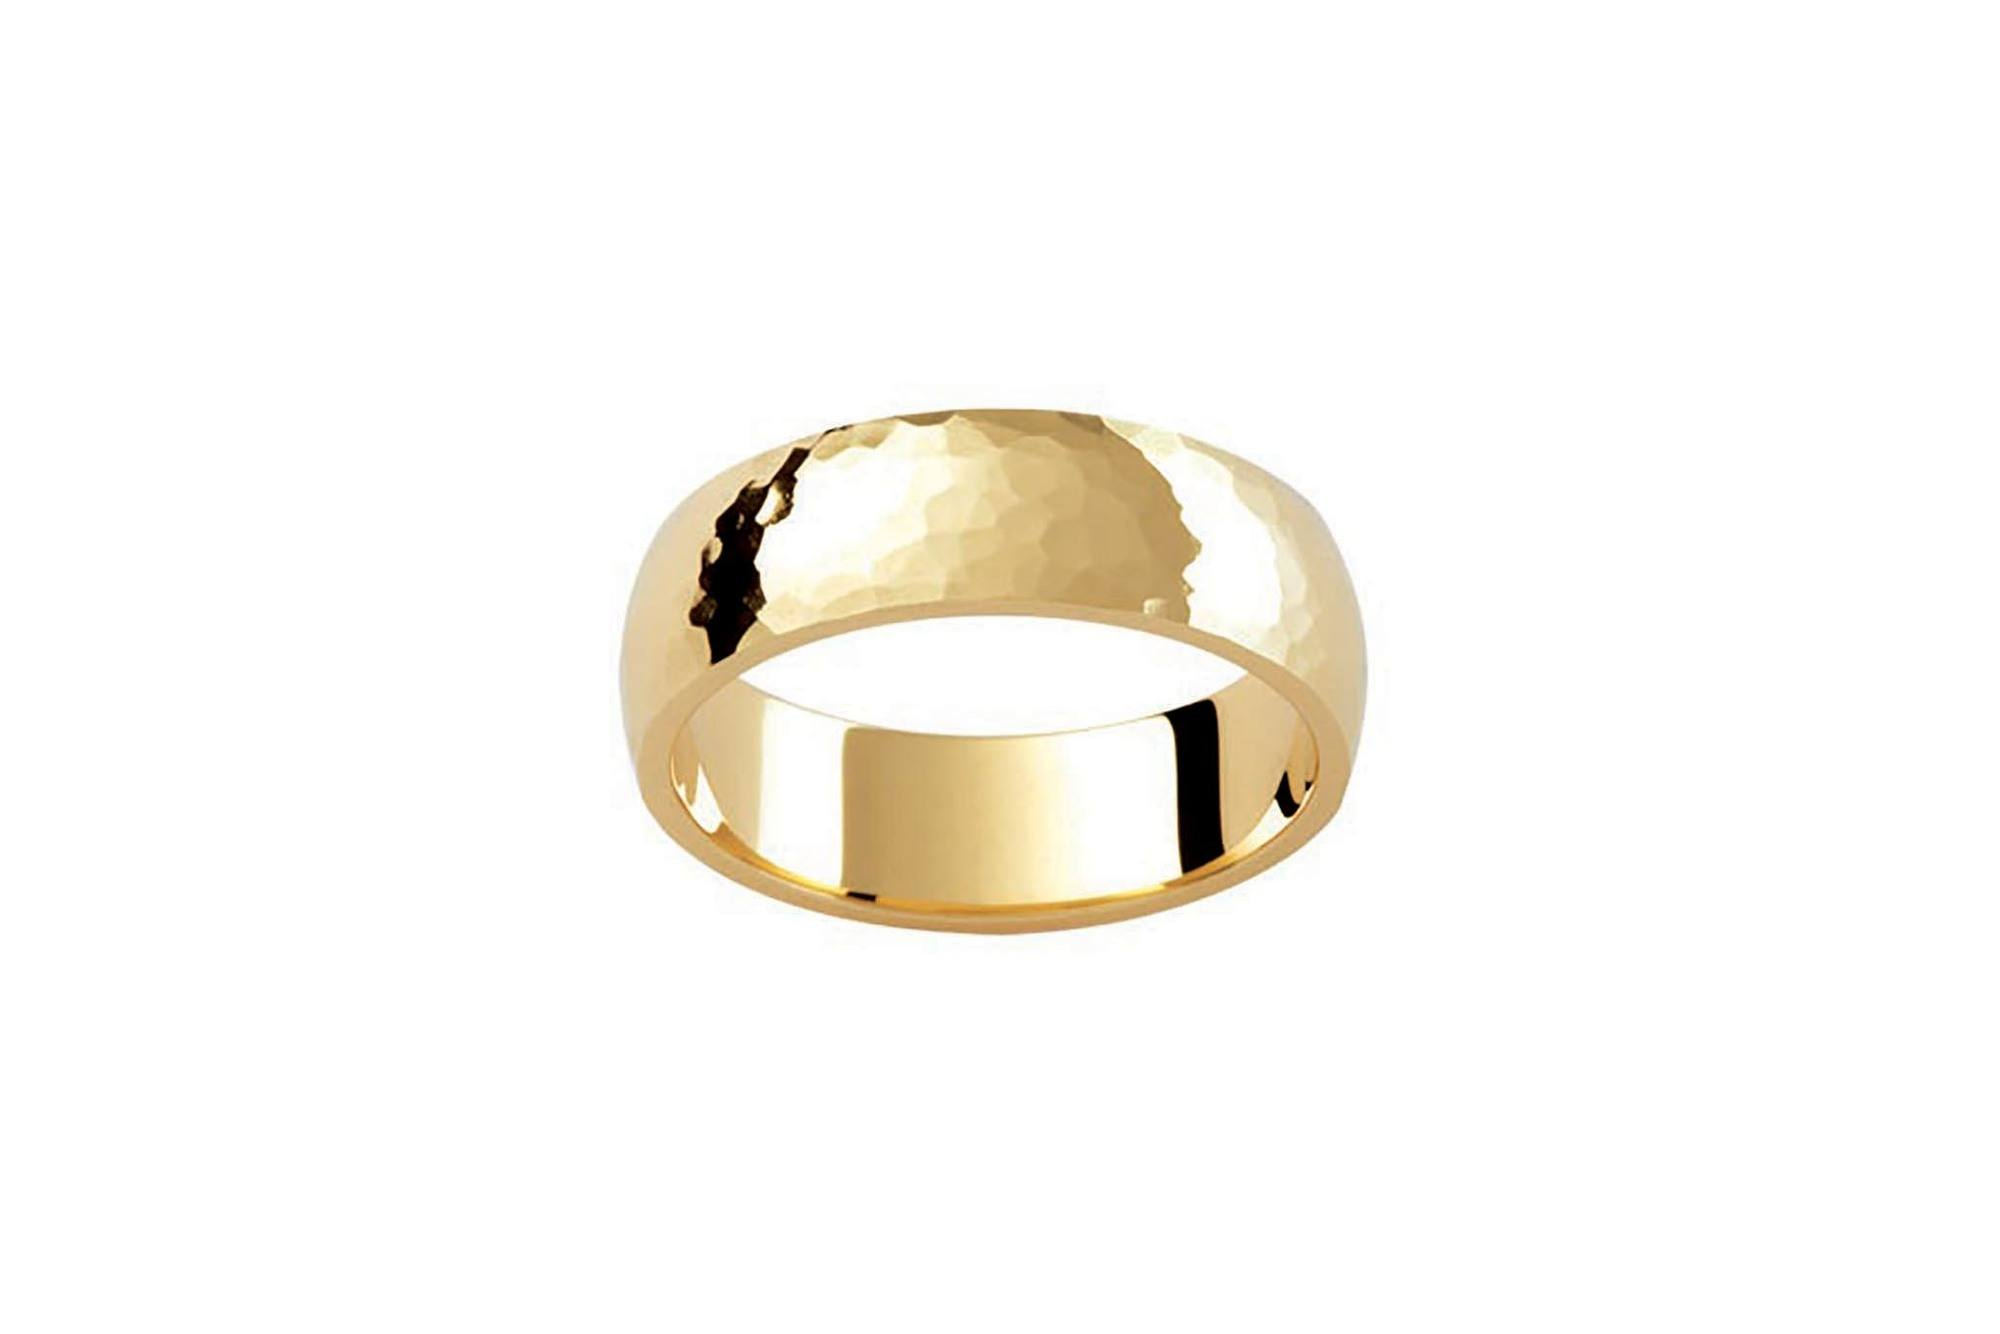 ring band rings unisex pin plain gold wedding white polished